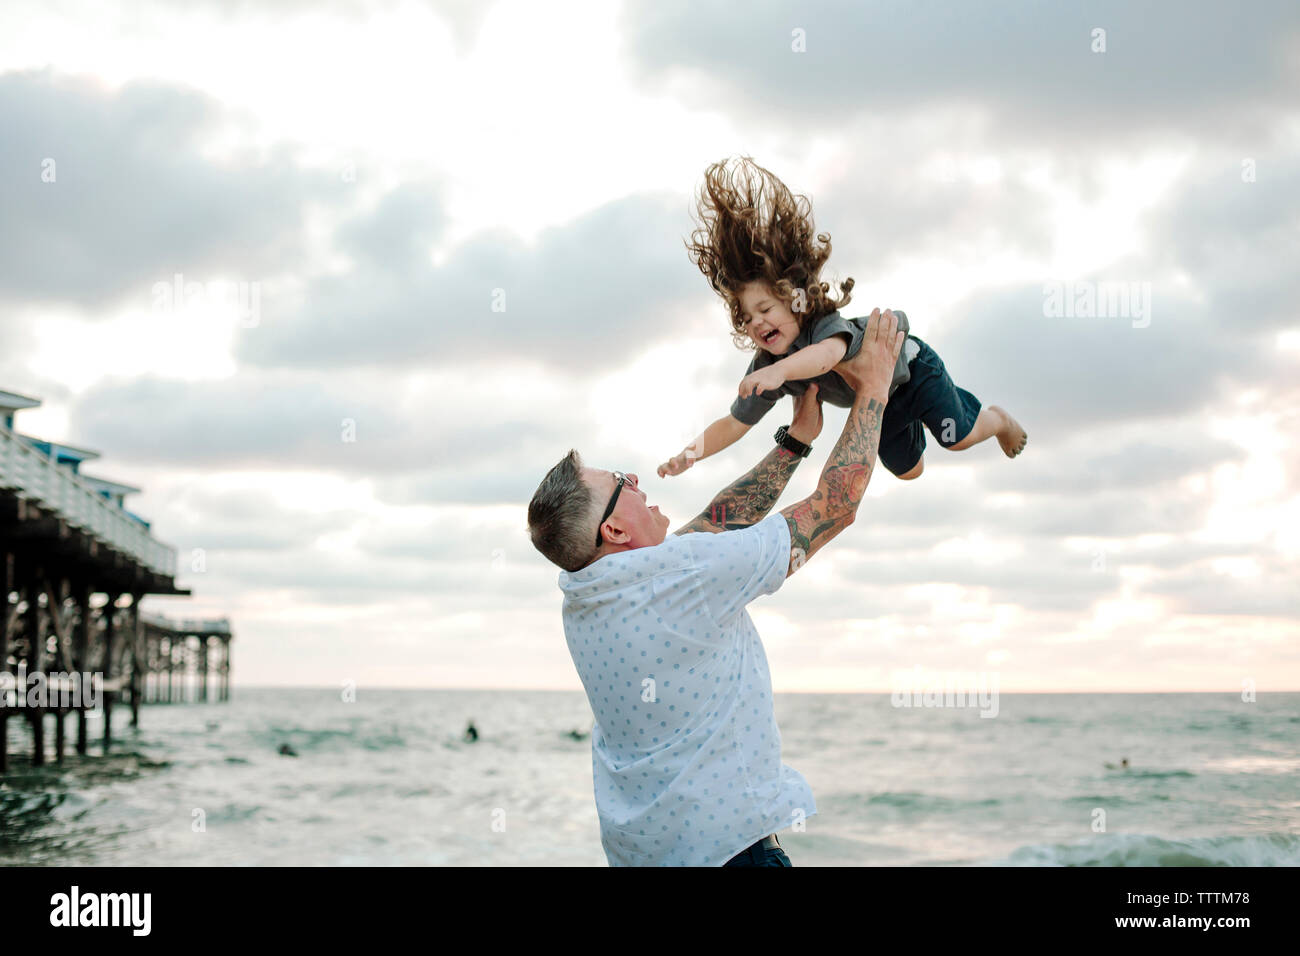 Playful father throwing son in air while playing against cloudy sky at beach - Stock Image